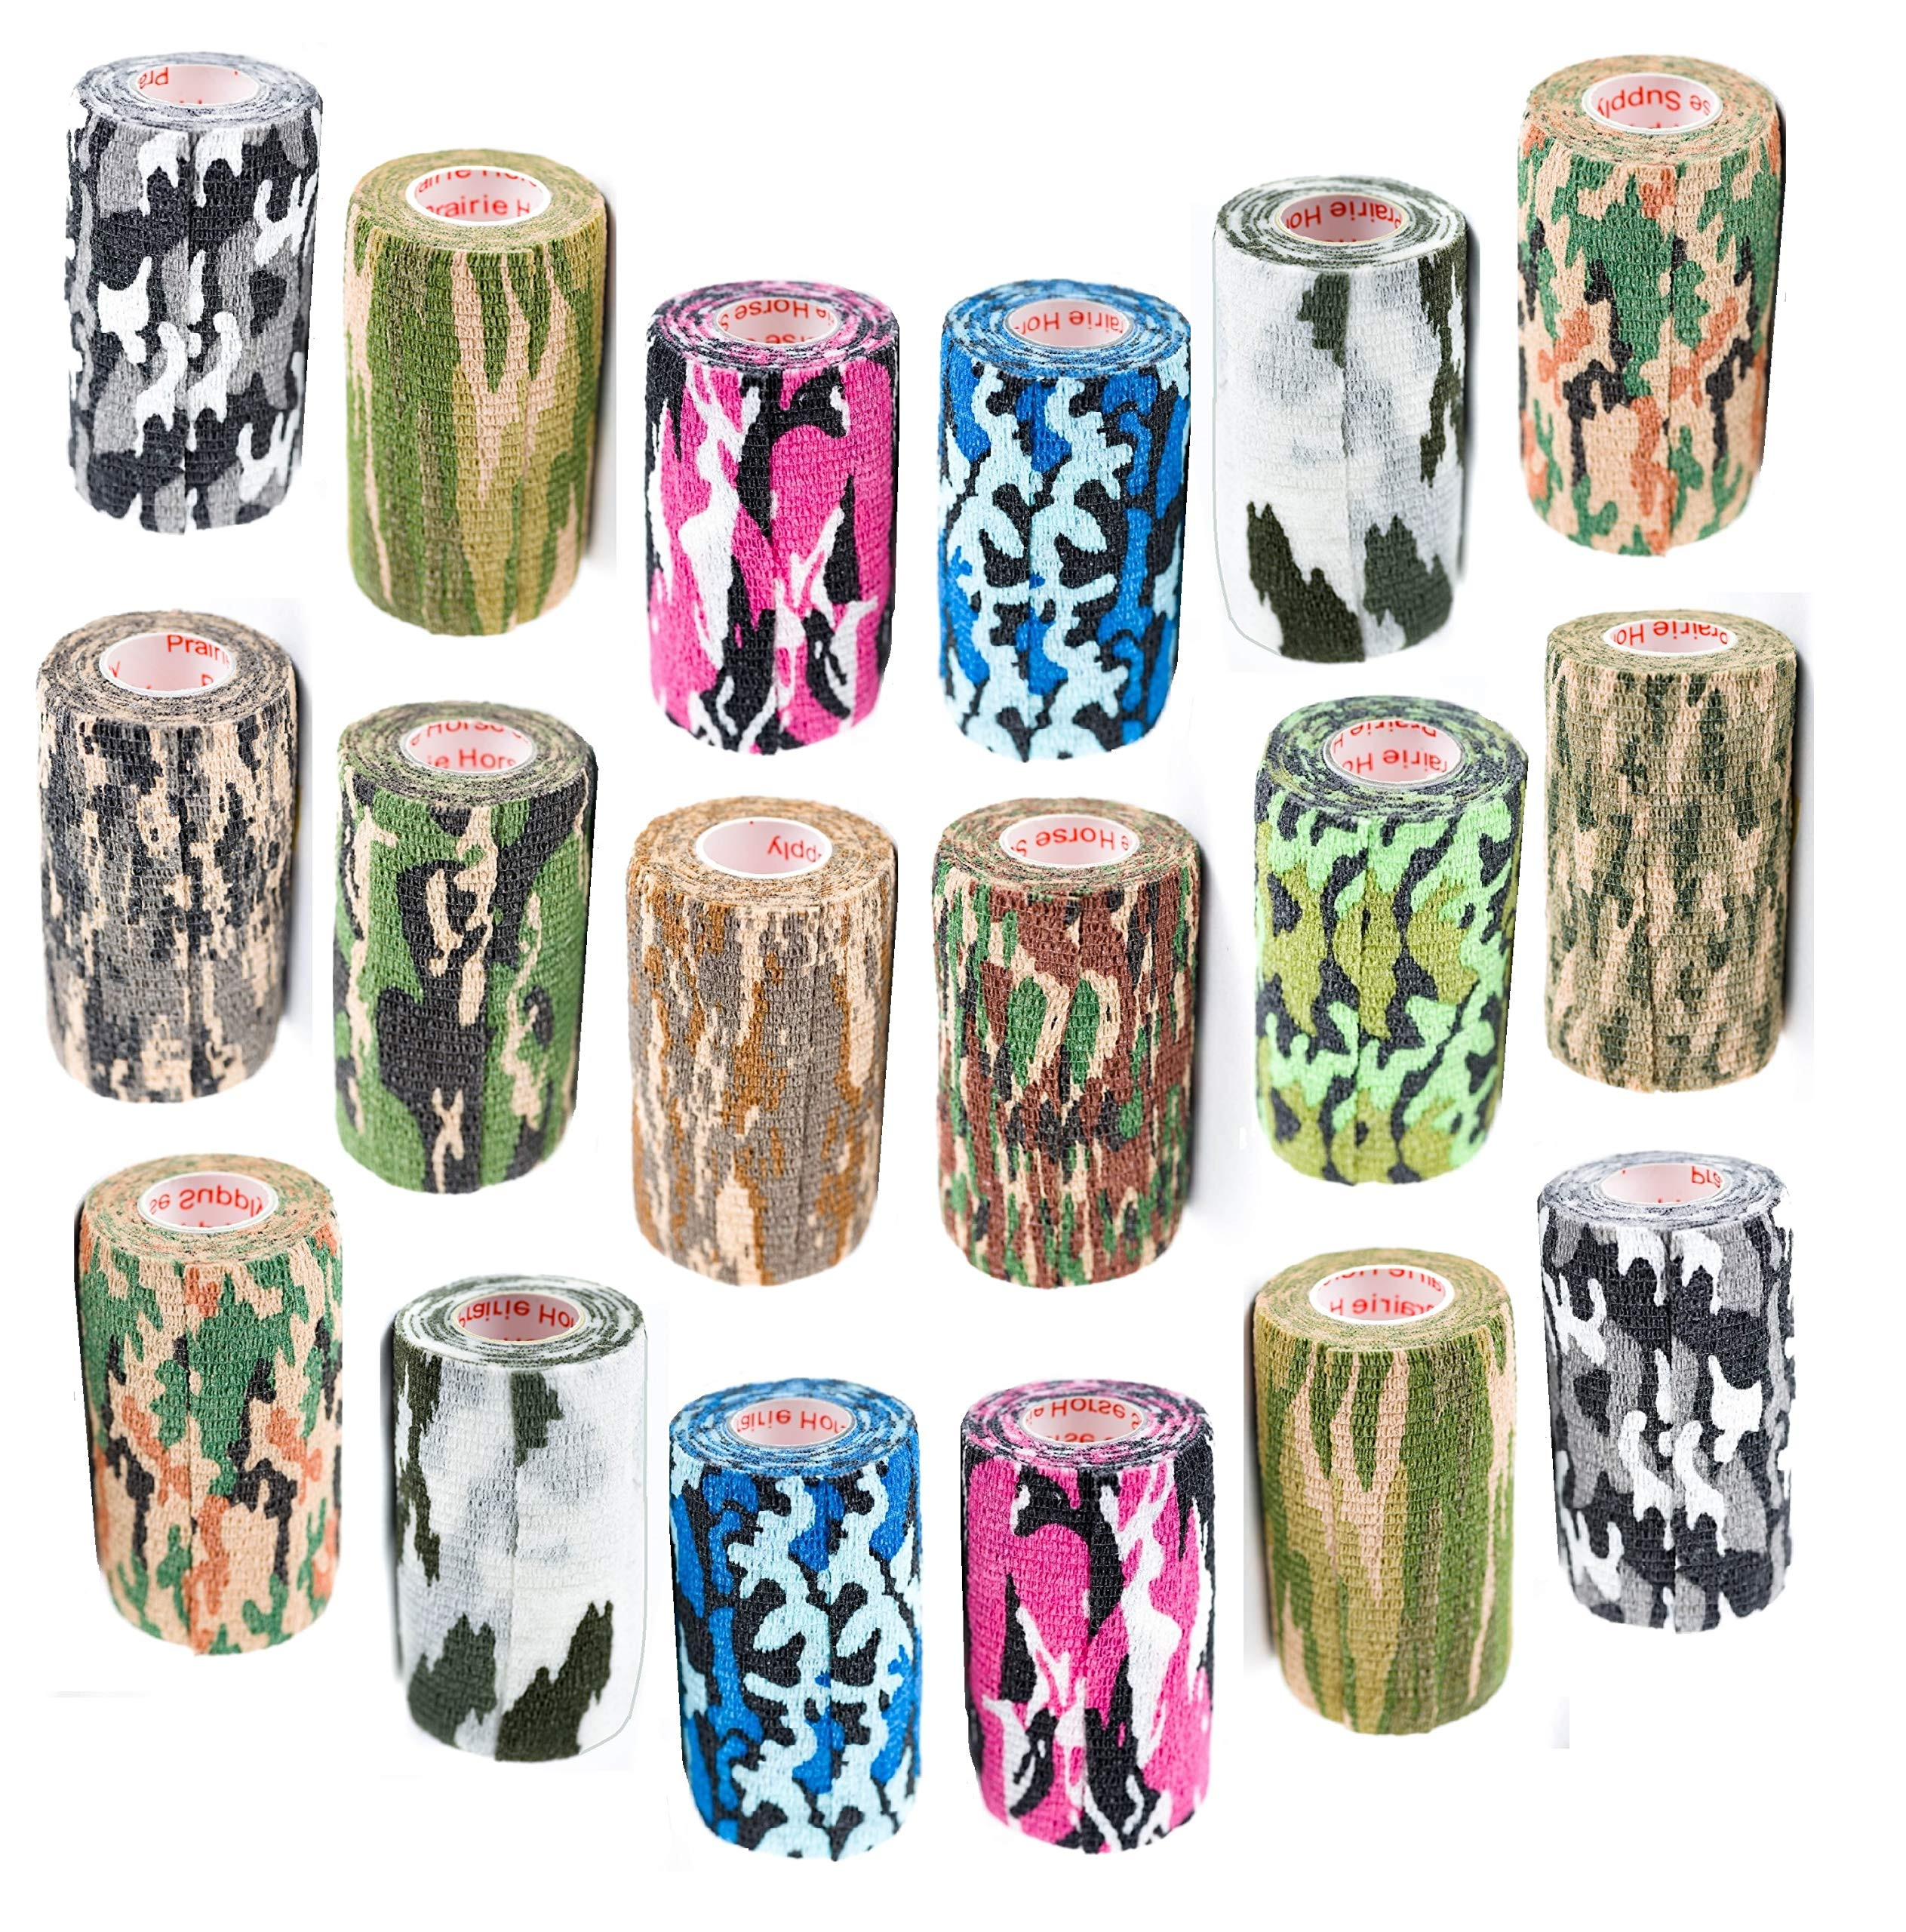 Vet Wrap Tape Bulk (Assorted and Camouflage Colors) (6, 12, 18, or 24 Pack) (2, 3, or 4 Inches wide) Vet Rap Medical First Aid Tape Self Adhesive Adherent for Ankle Wrist Sprains and Swelling